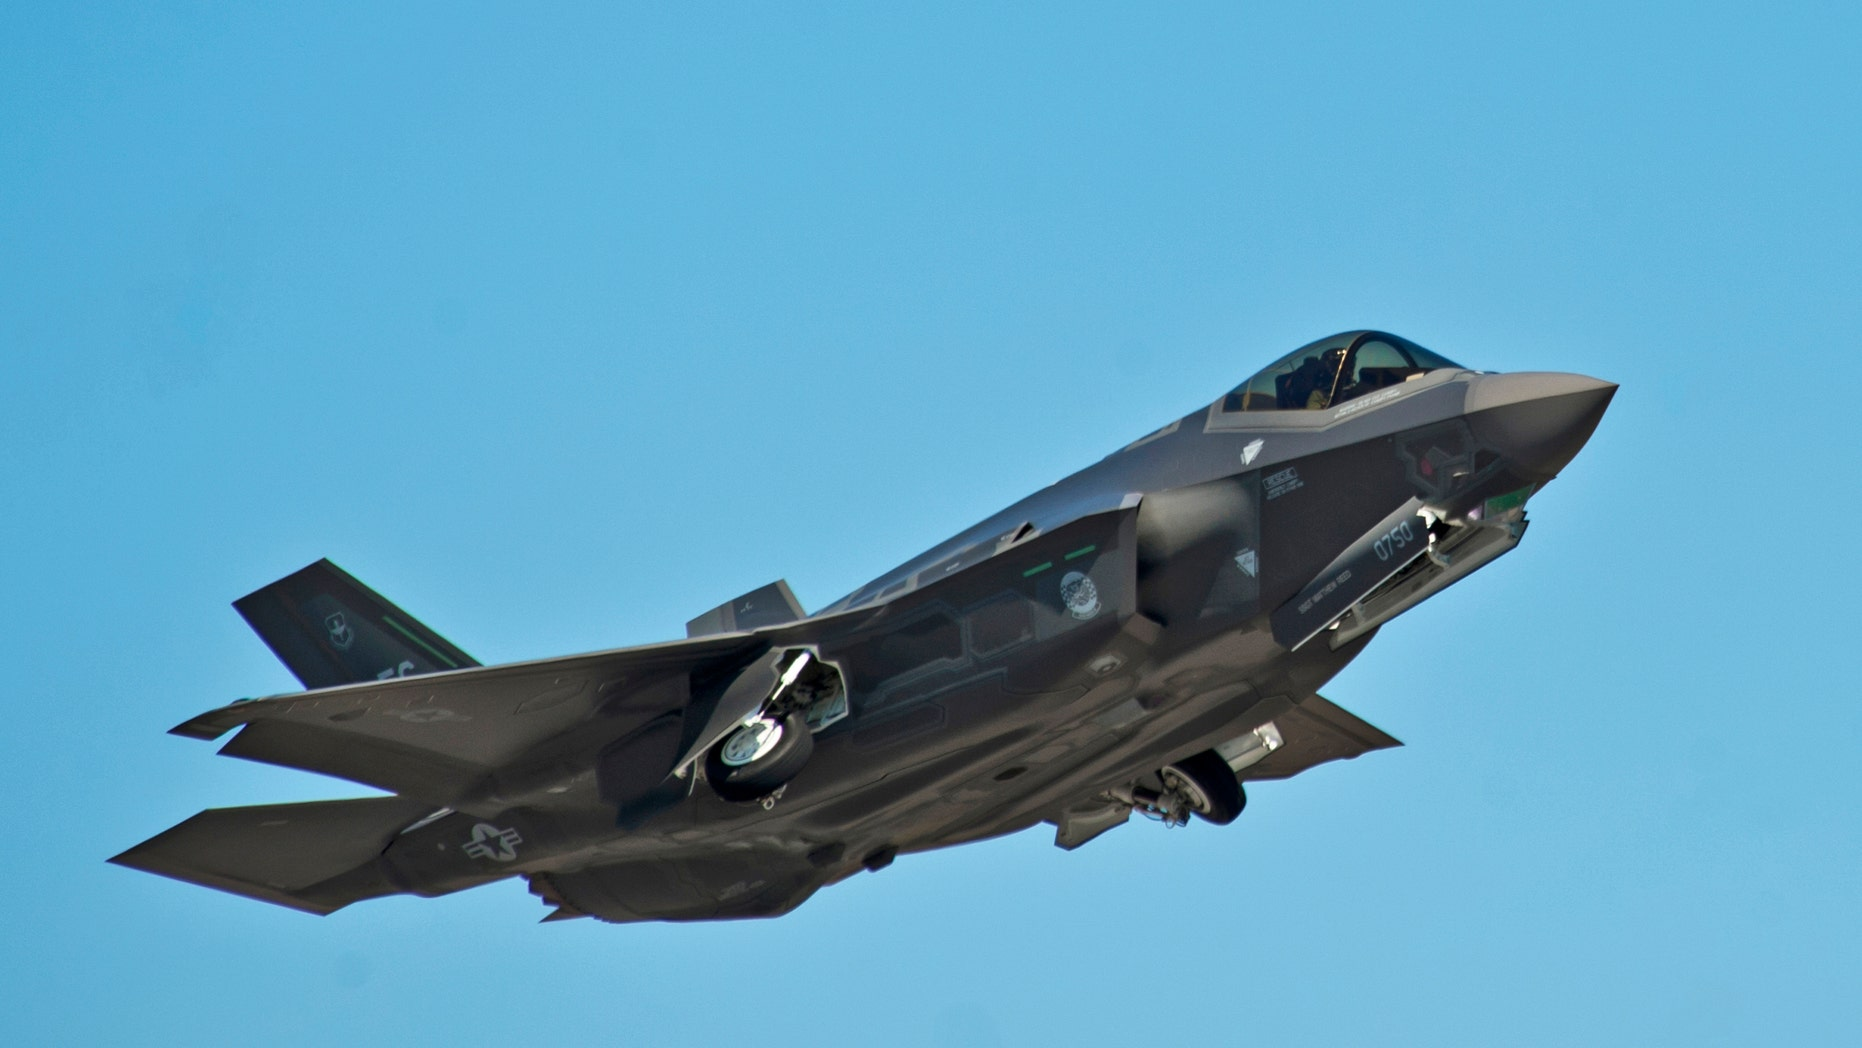 An F-35A Lightning II Joint Strike Fighter takes off on a training sortie at Eglin Air Force Base, Florida in this March 6, 2012 file photo.